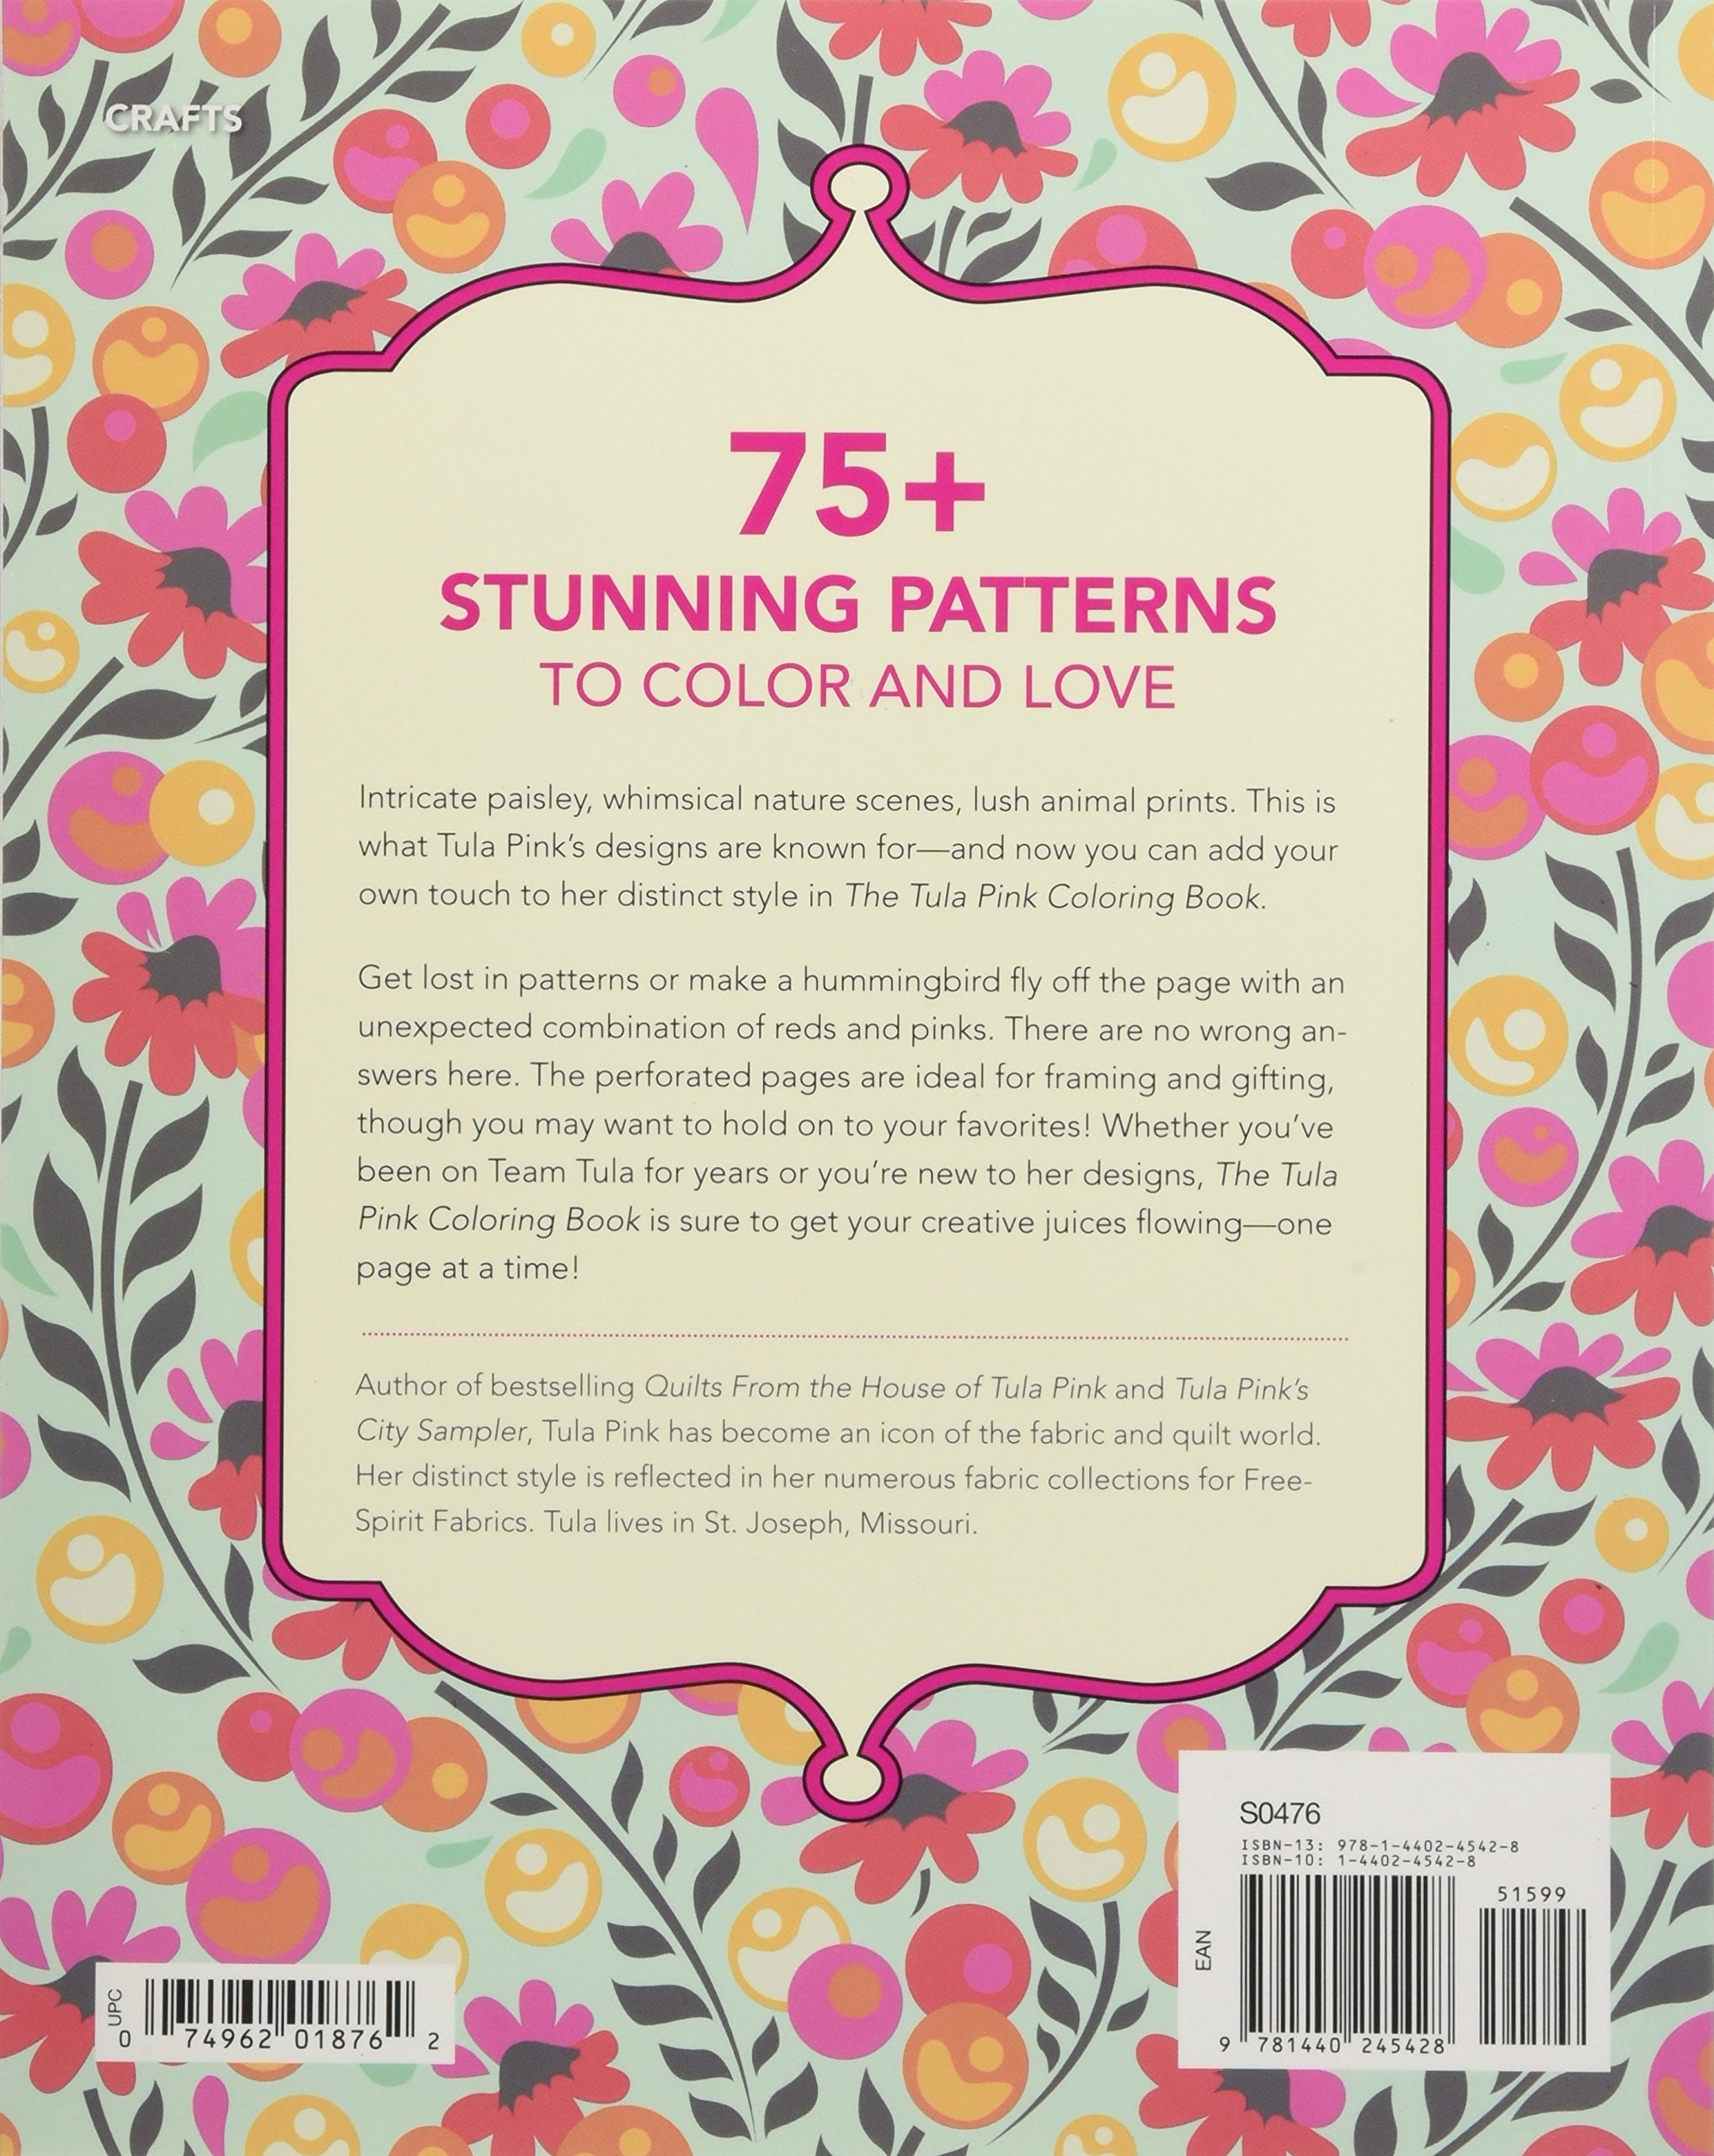 Amazon The Tula Pink Coloring Book 75 Signature Designs In Fanciful Pages 9781440245428 Books